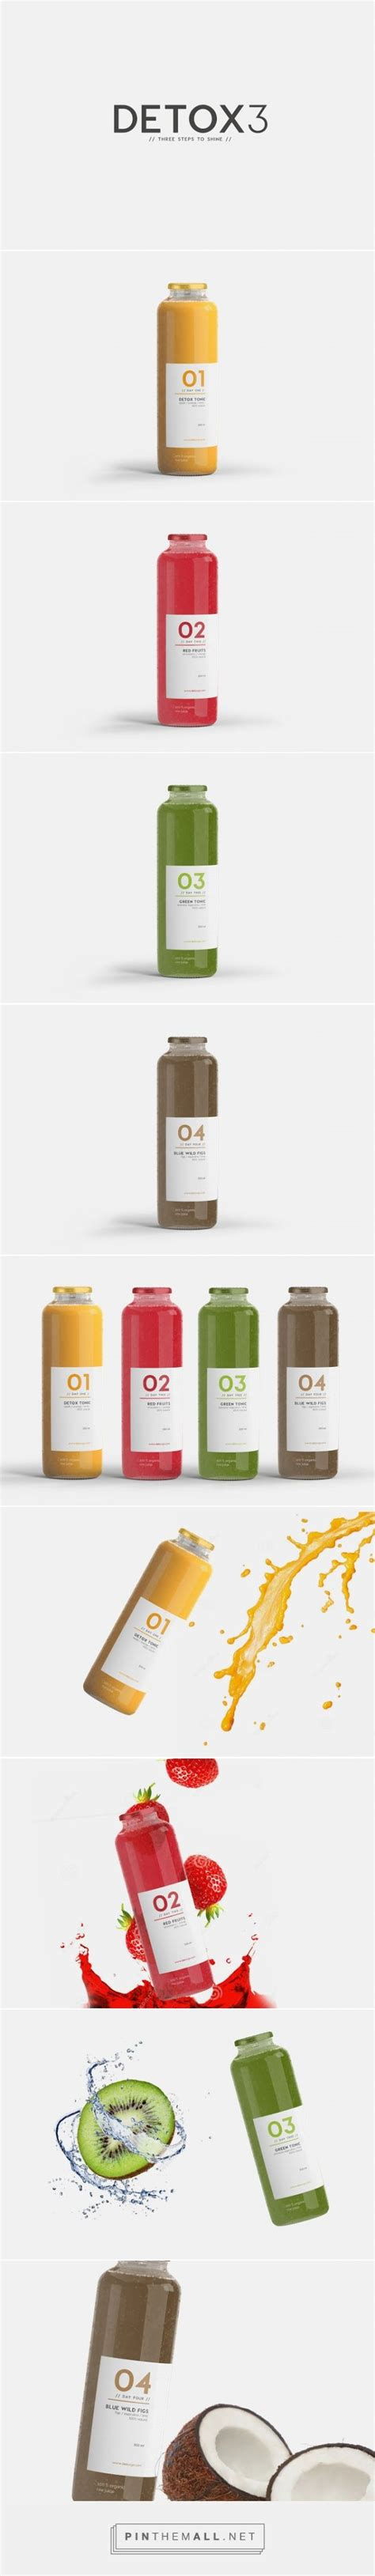 Label Detox Drink by Best 25 Beverage Packaging Ideas Only On